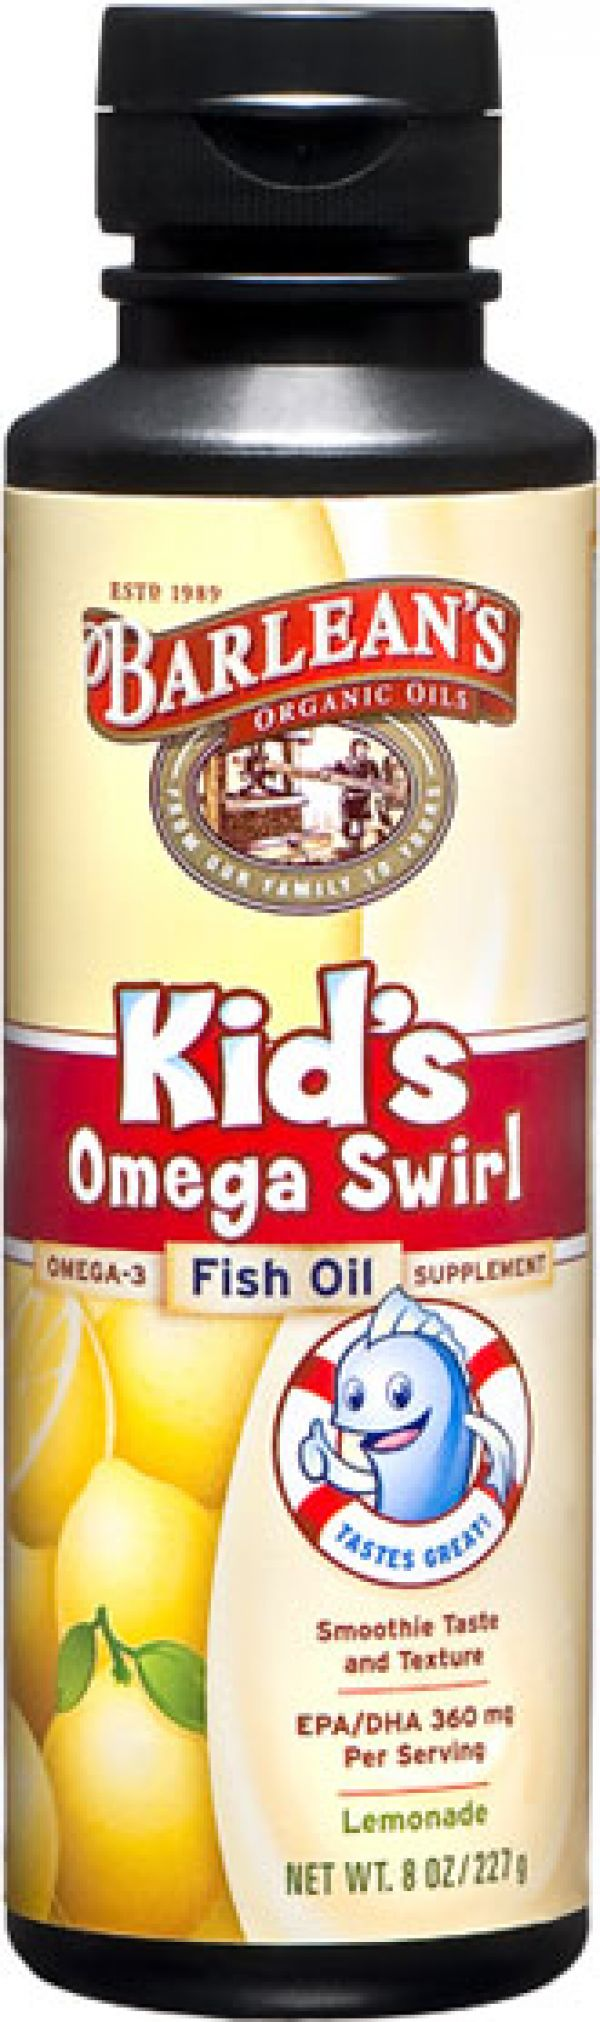 Barlean's Kid's Omega Swirl Omega-3 Fish Oil Supplement Lemonade 8 Fl Oz